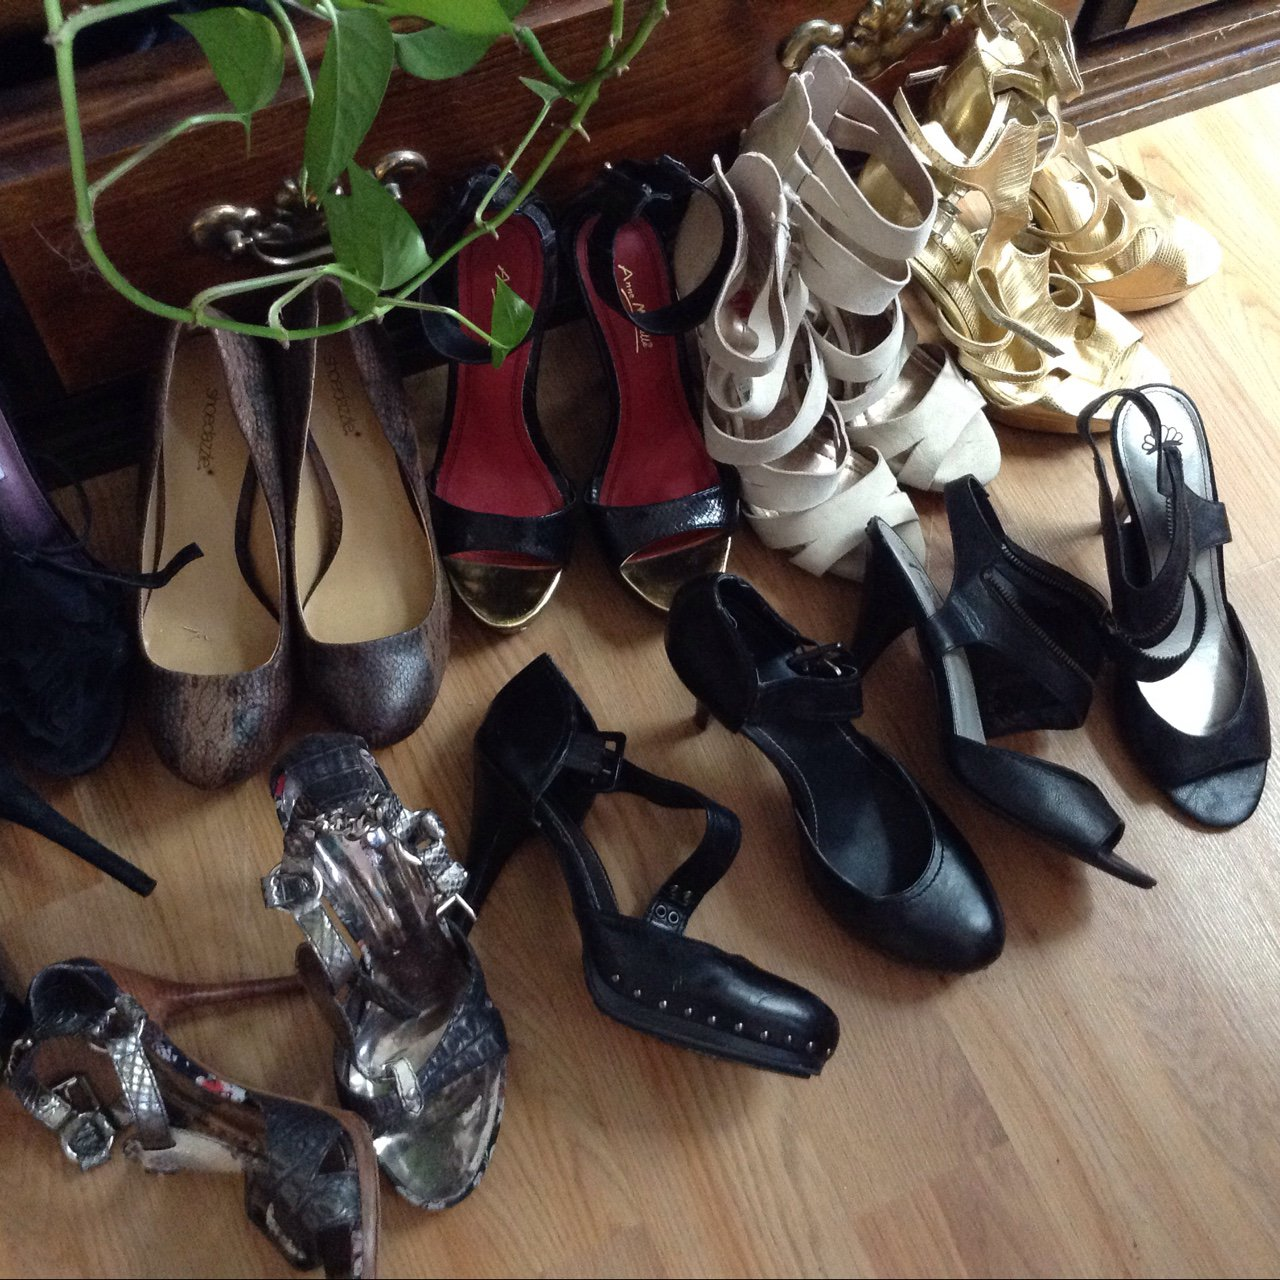 fe9a50cbd Lot of nice high heels. 8 pairs  1) Anne Michele